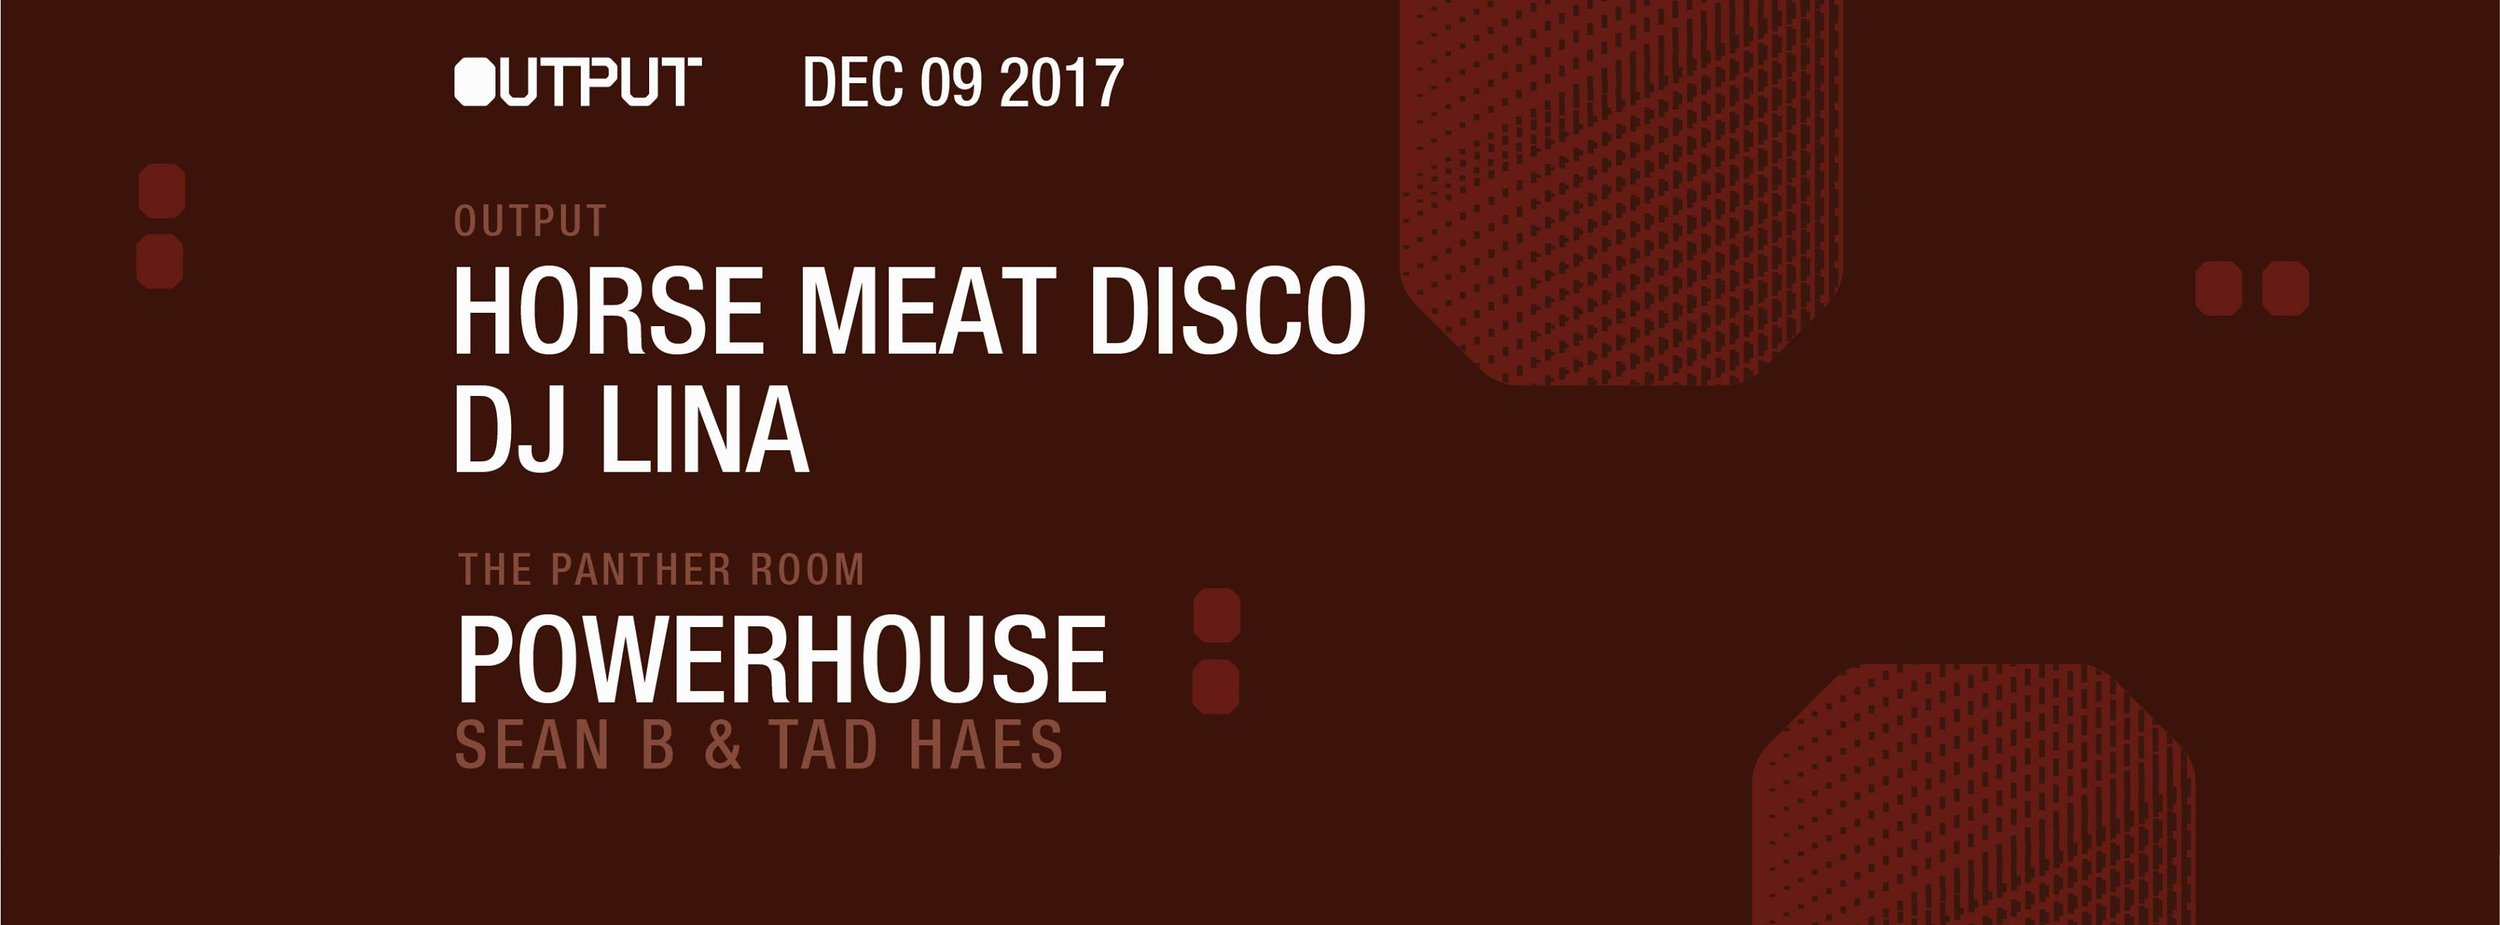 horse meat disco Output Robbie Lumpkin Promotions